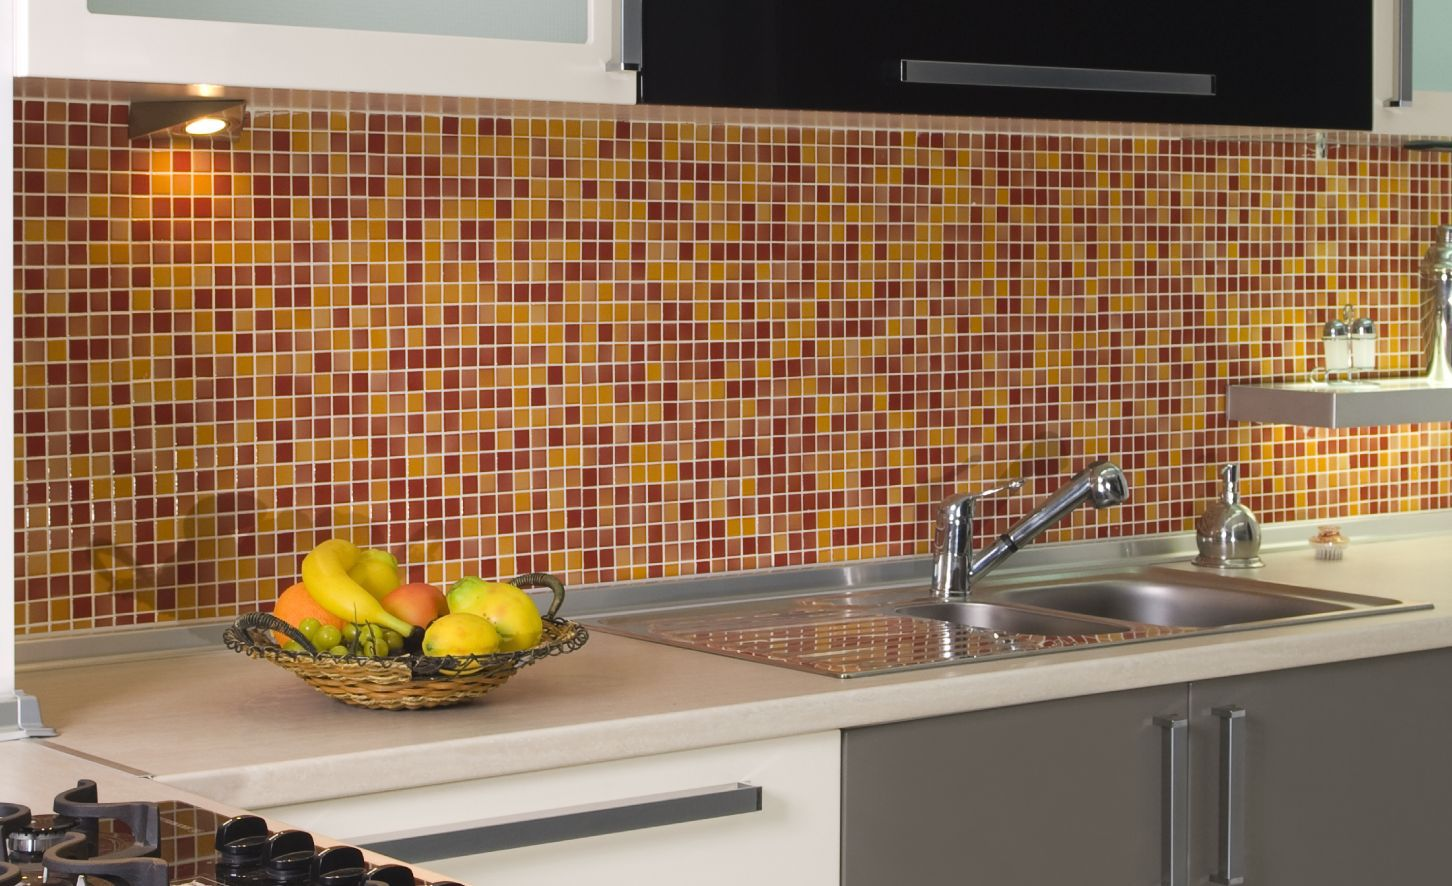 Guide To Wall And Floor Tile Sizes - 5x5 inch tiles